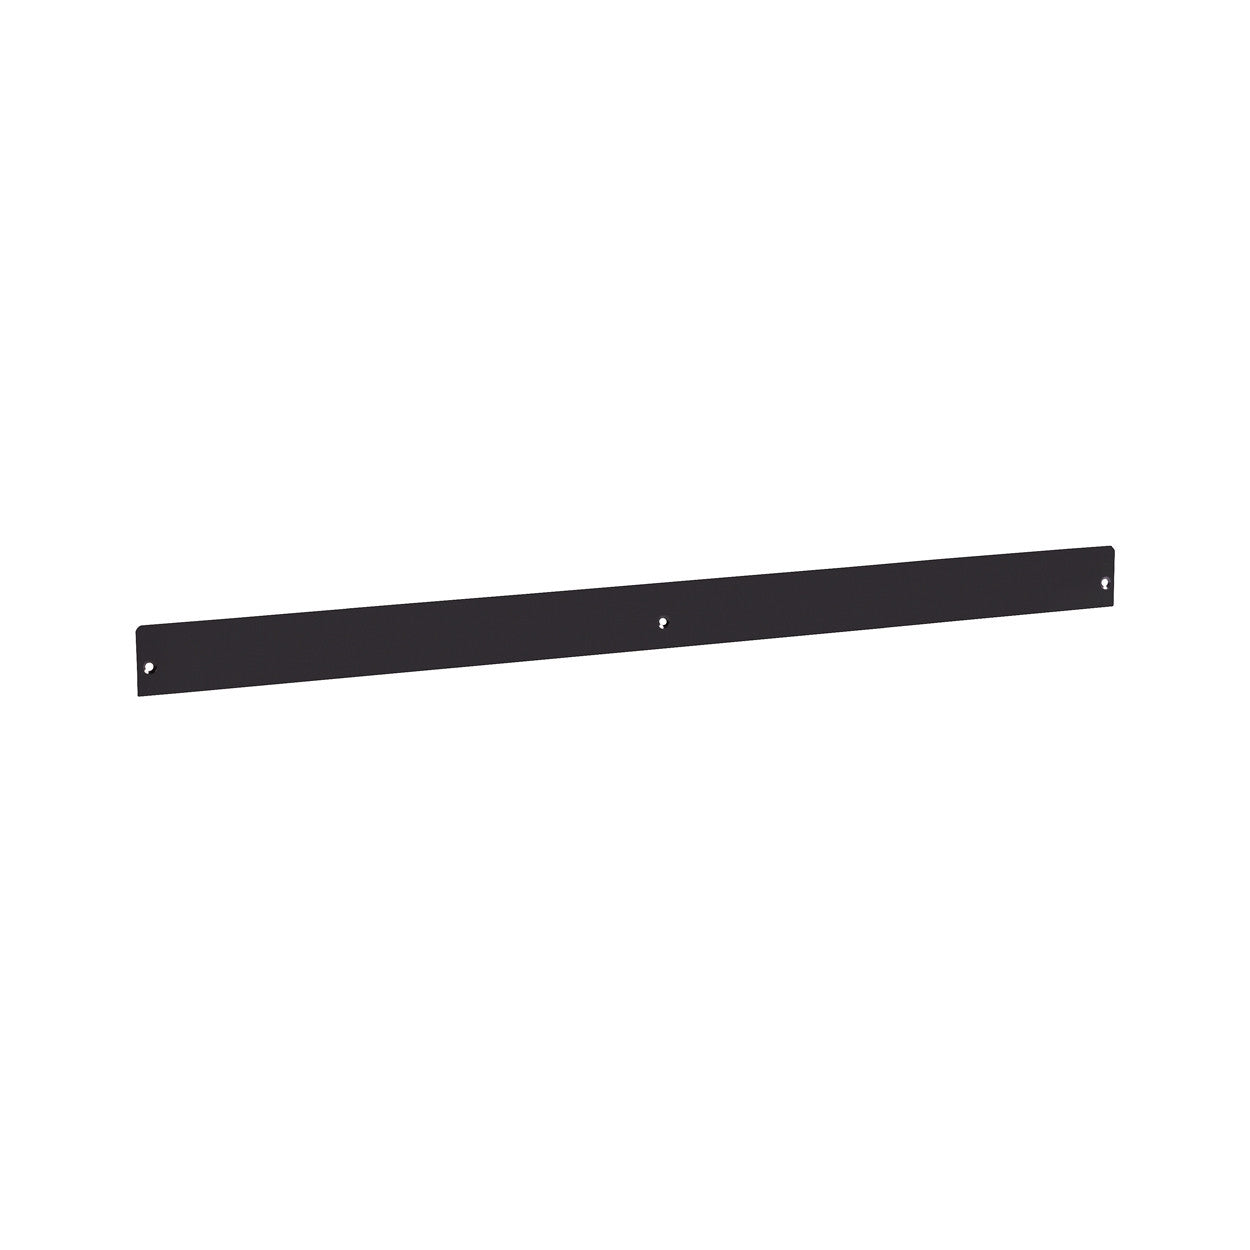 MAXe 30 mm shelf lip 52 H - 900 mm bay  893 W x 2.5 mm Thick E7009BK